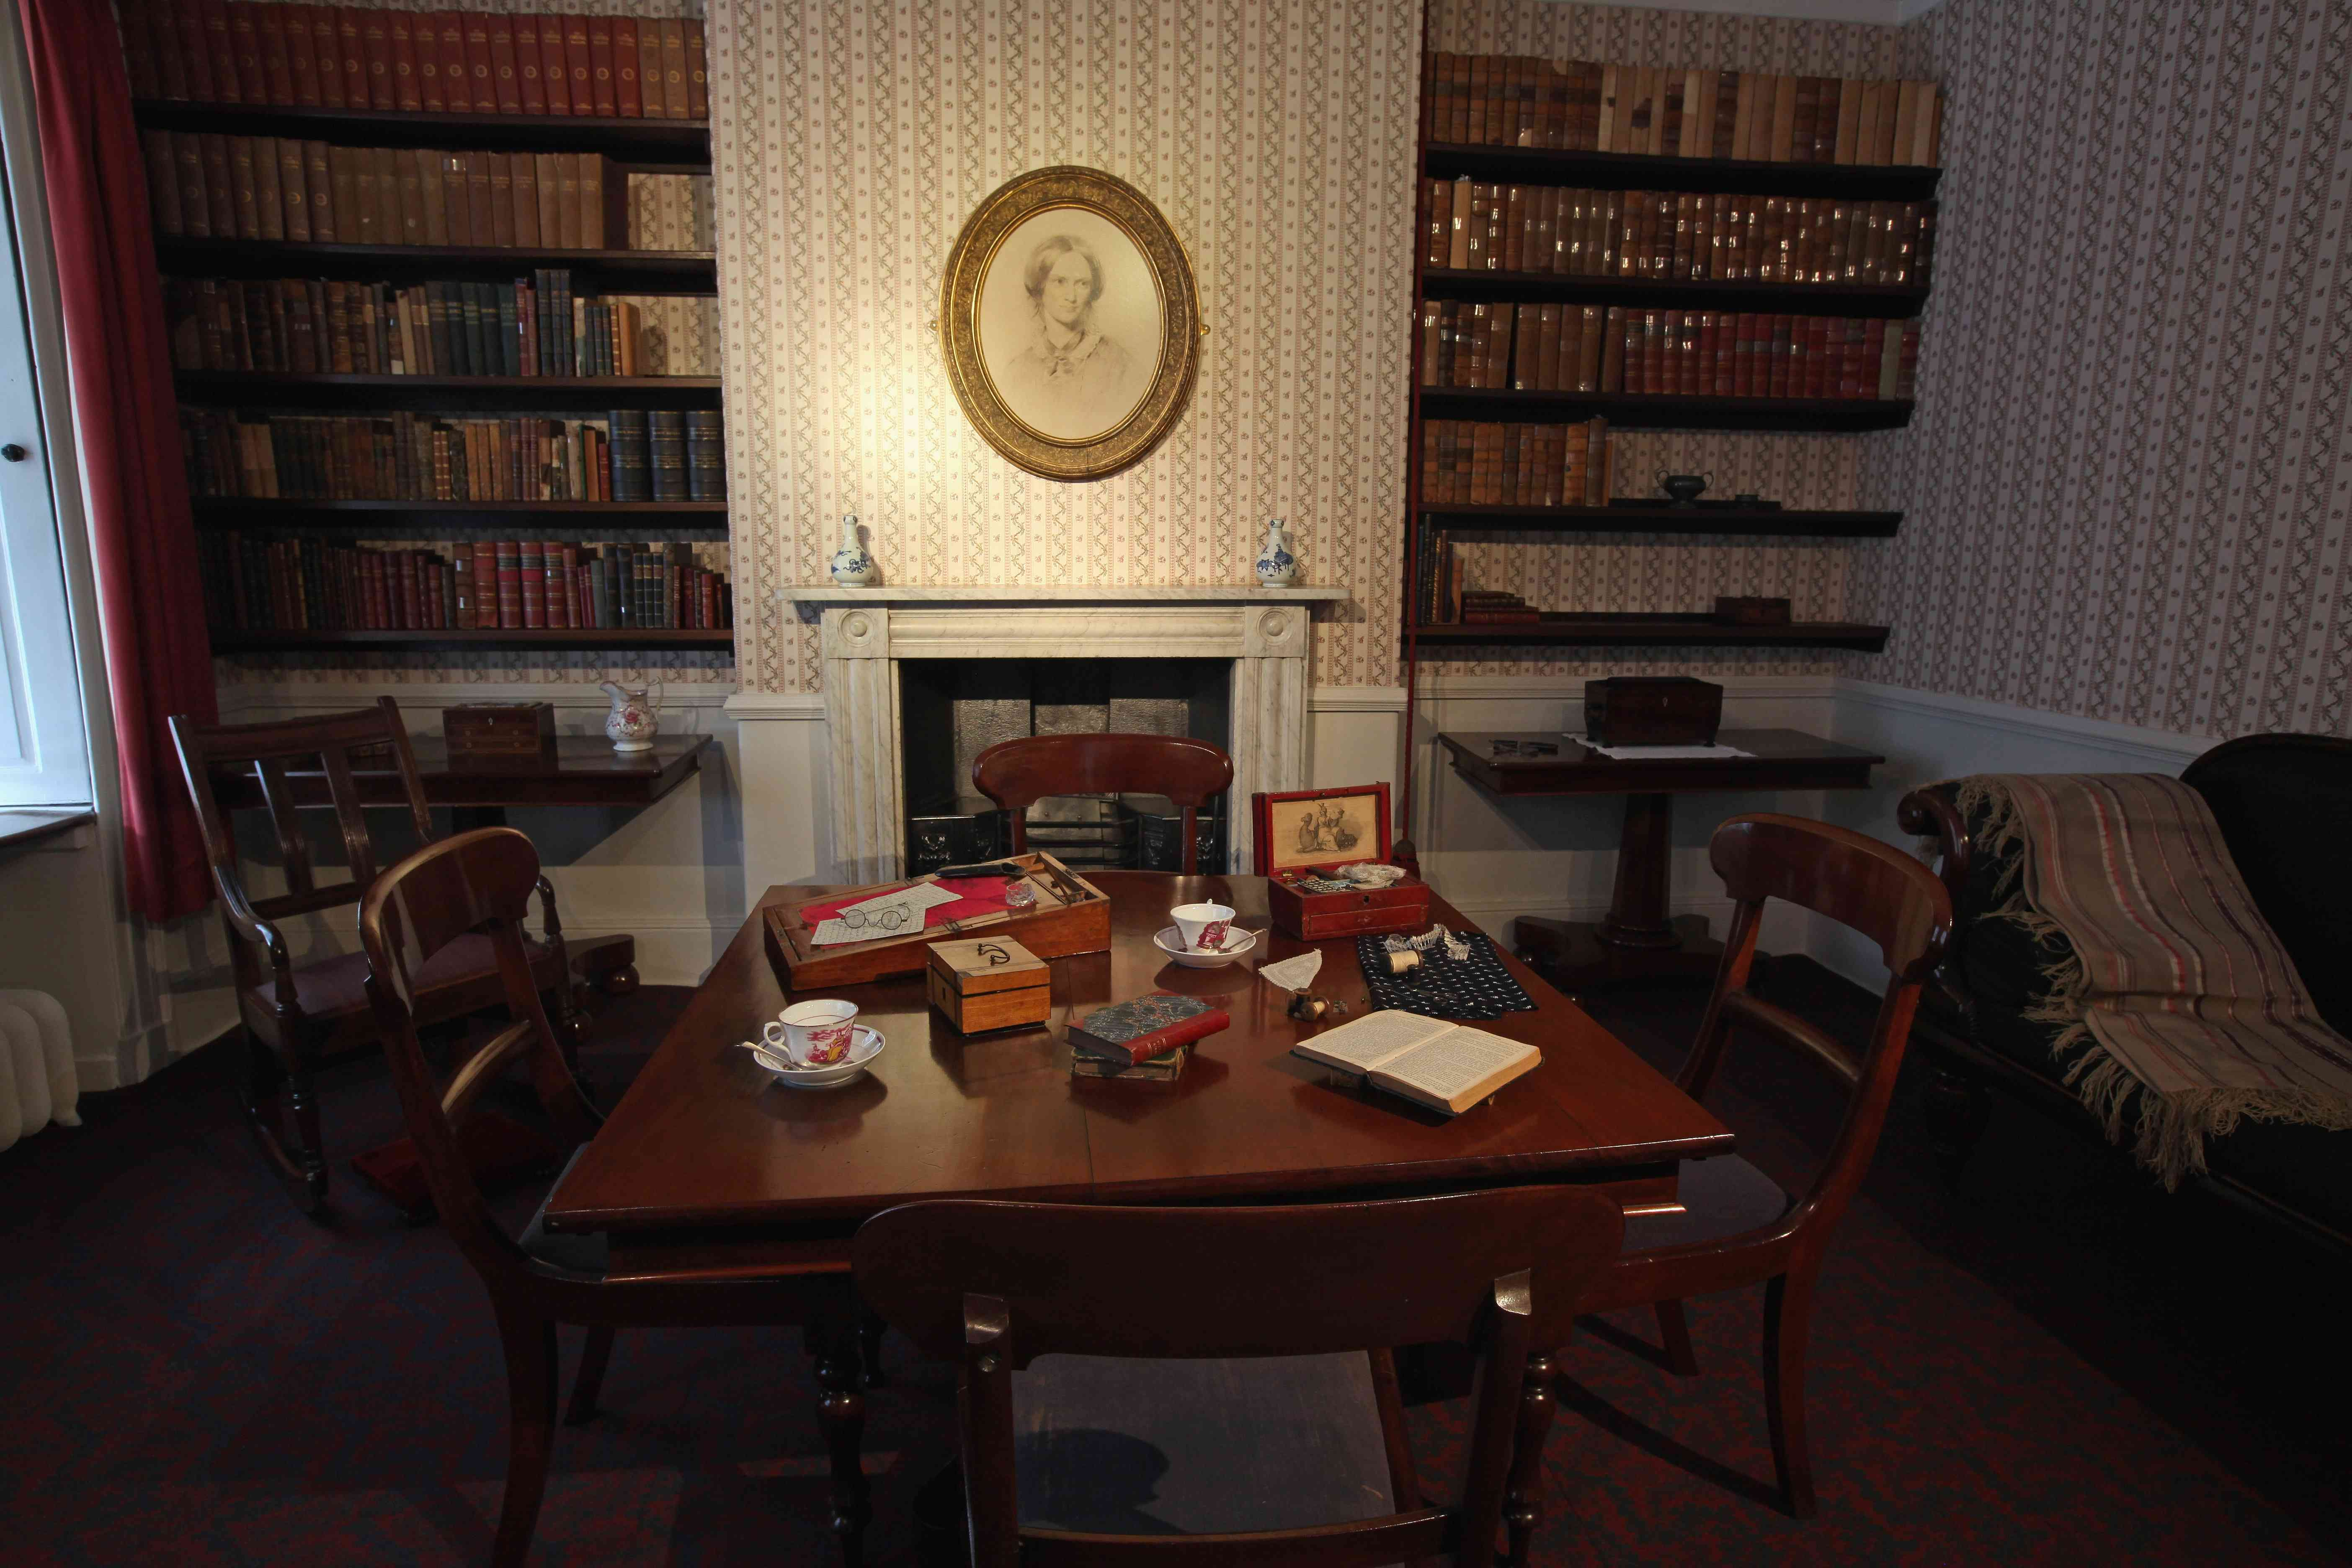 The dining room of the Bronte Parsonage Museum